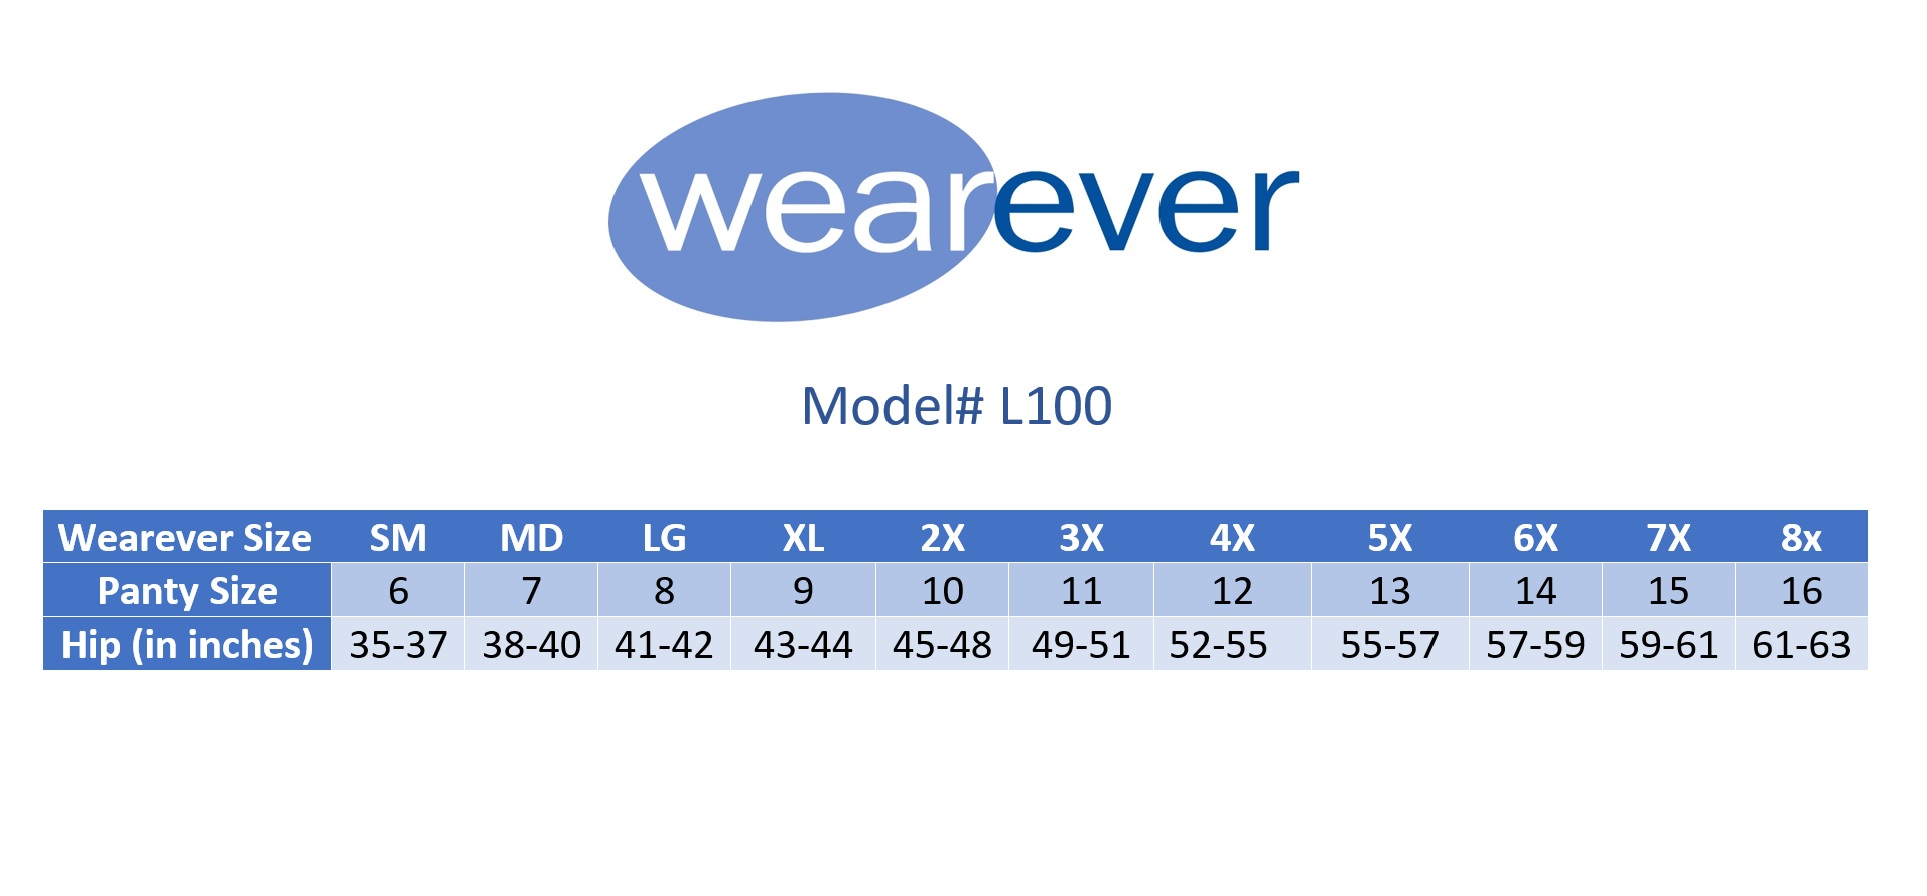 1-Pack-Wearever-Cotton-Comfort-Regular-Absorbency-Reusable-Incontinence-Panty thumbnail 8